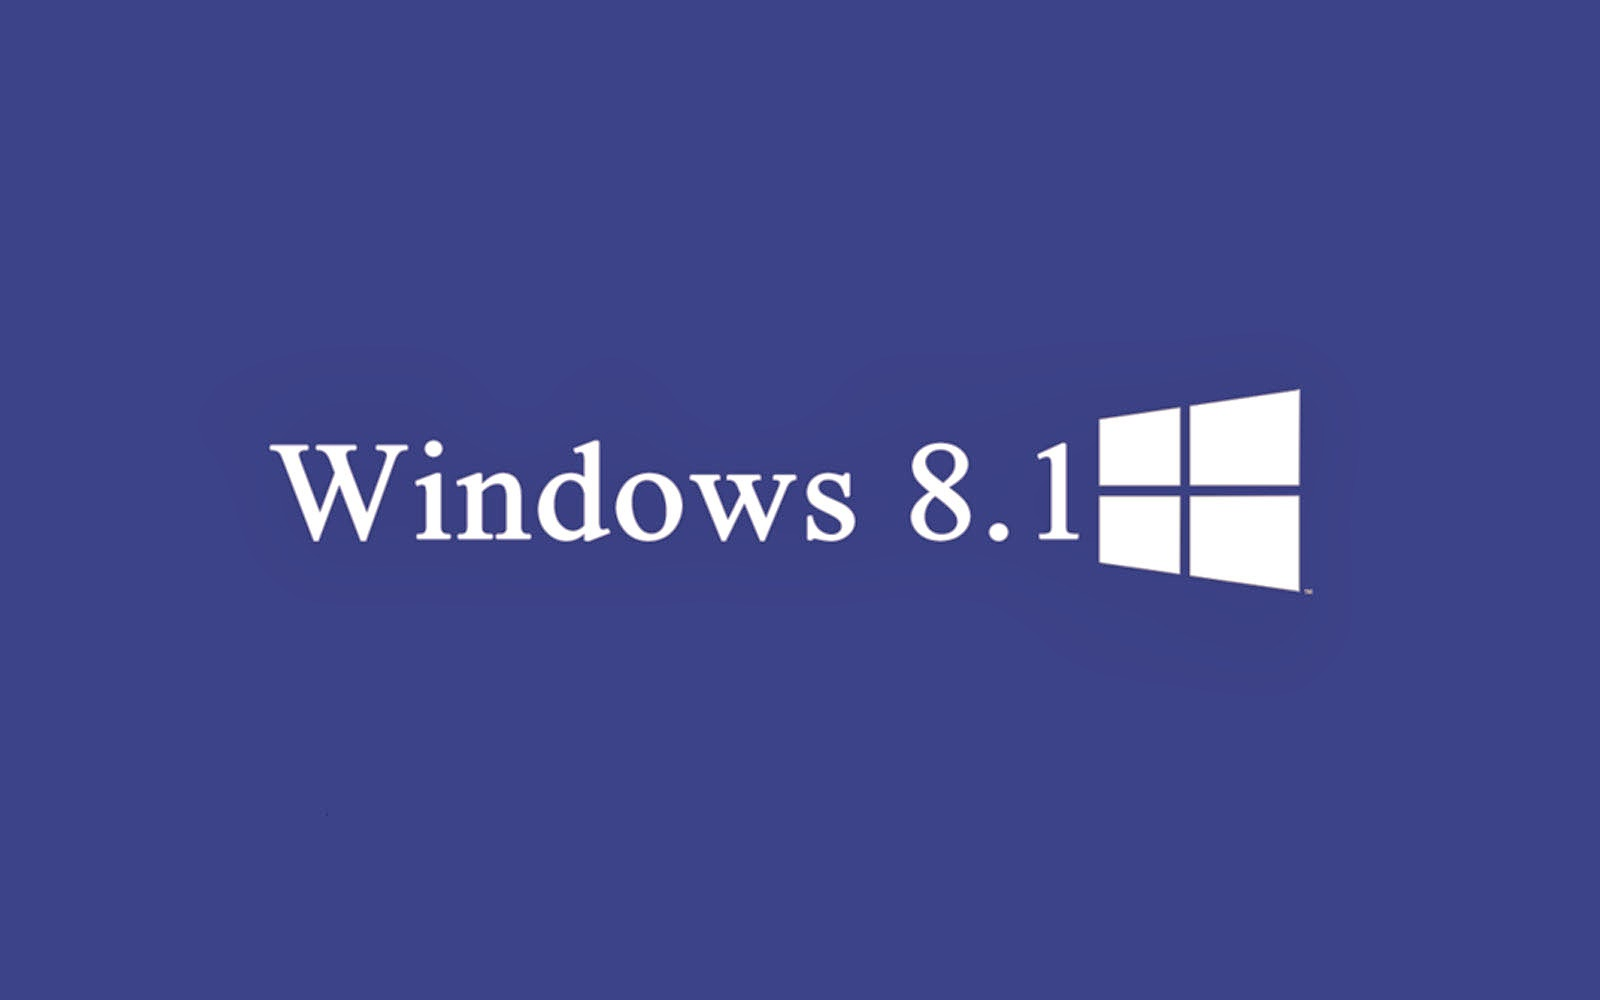 windows 81 wallpapers pictures images